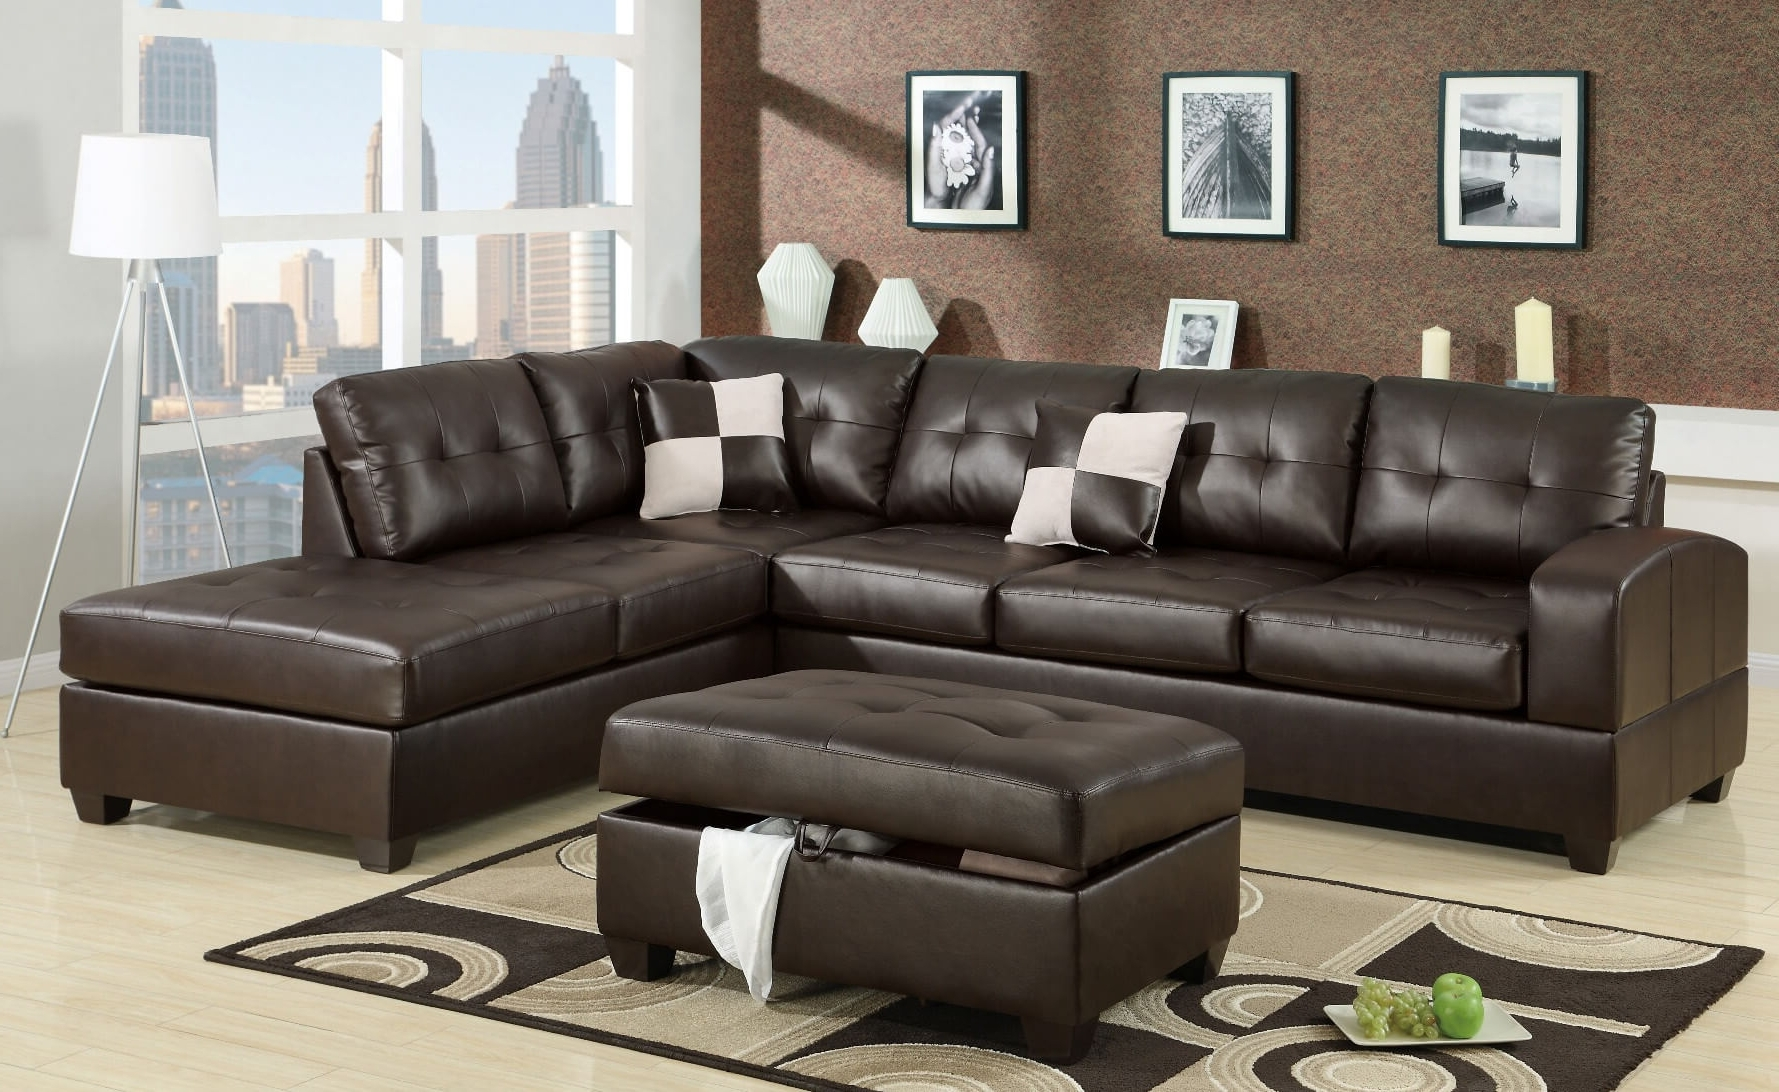 Best And Newest Sectional Sofas Under $500 – Hotelsbacau Within Sectional Sofas Under  (View 11 of 15)